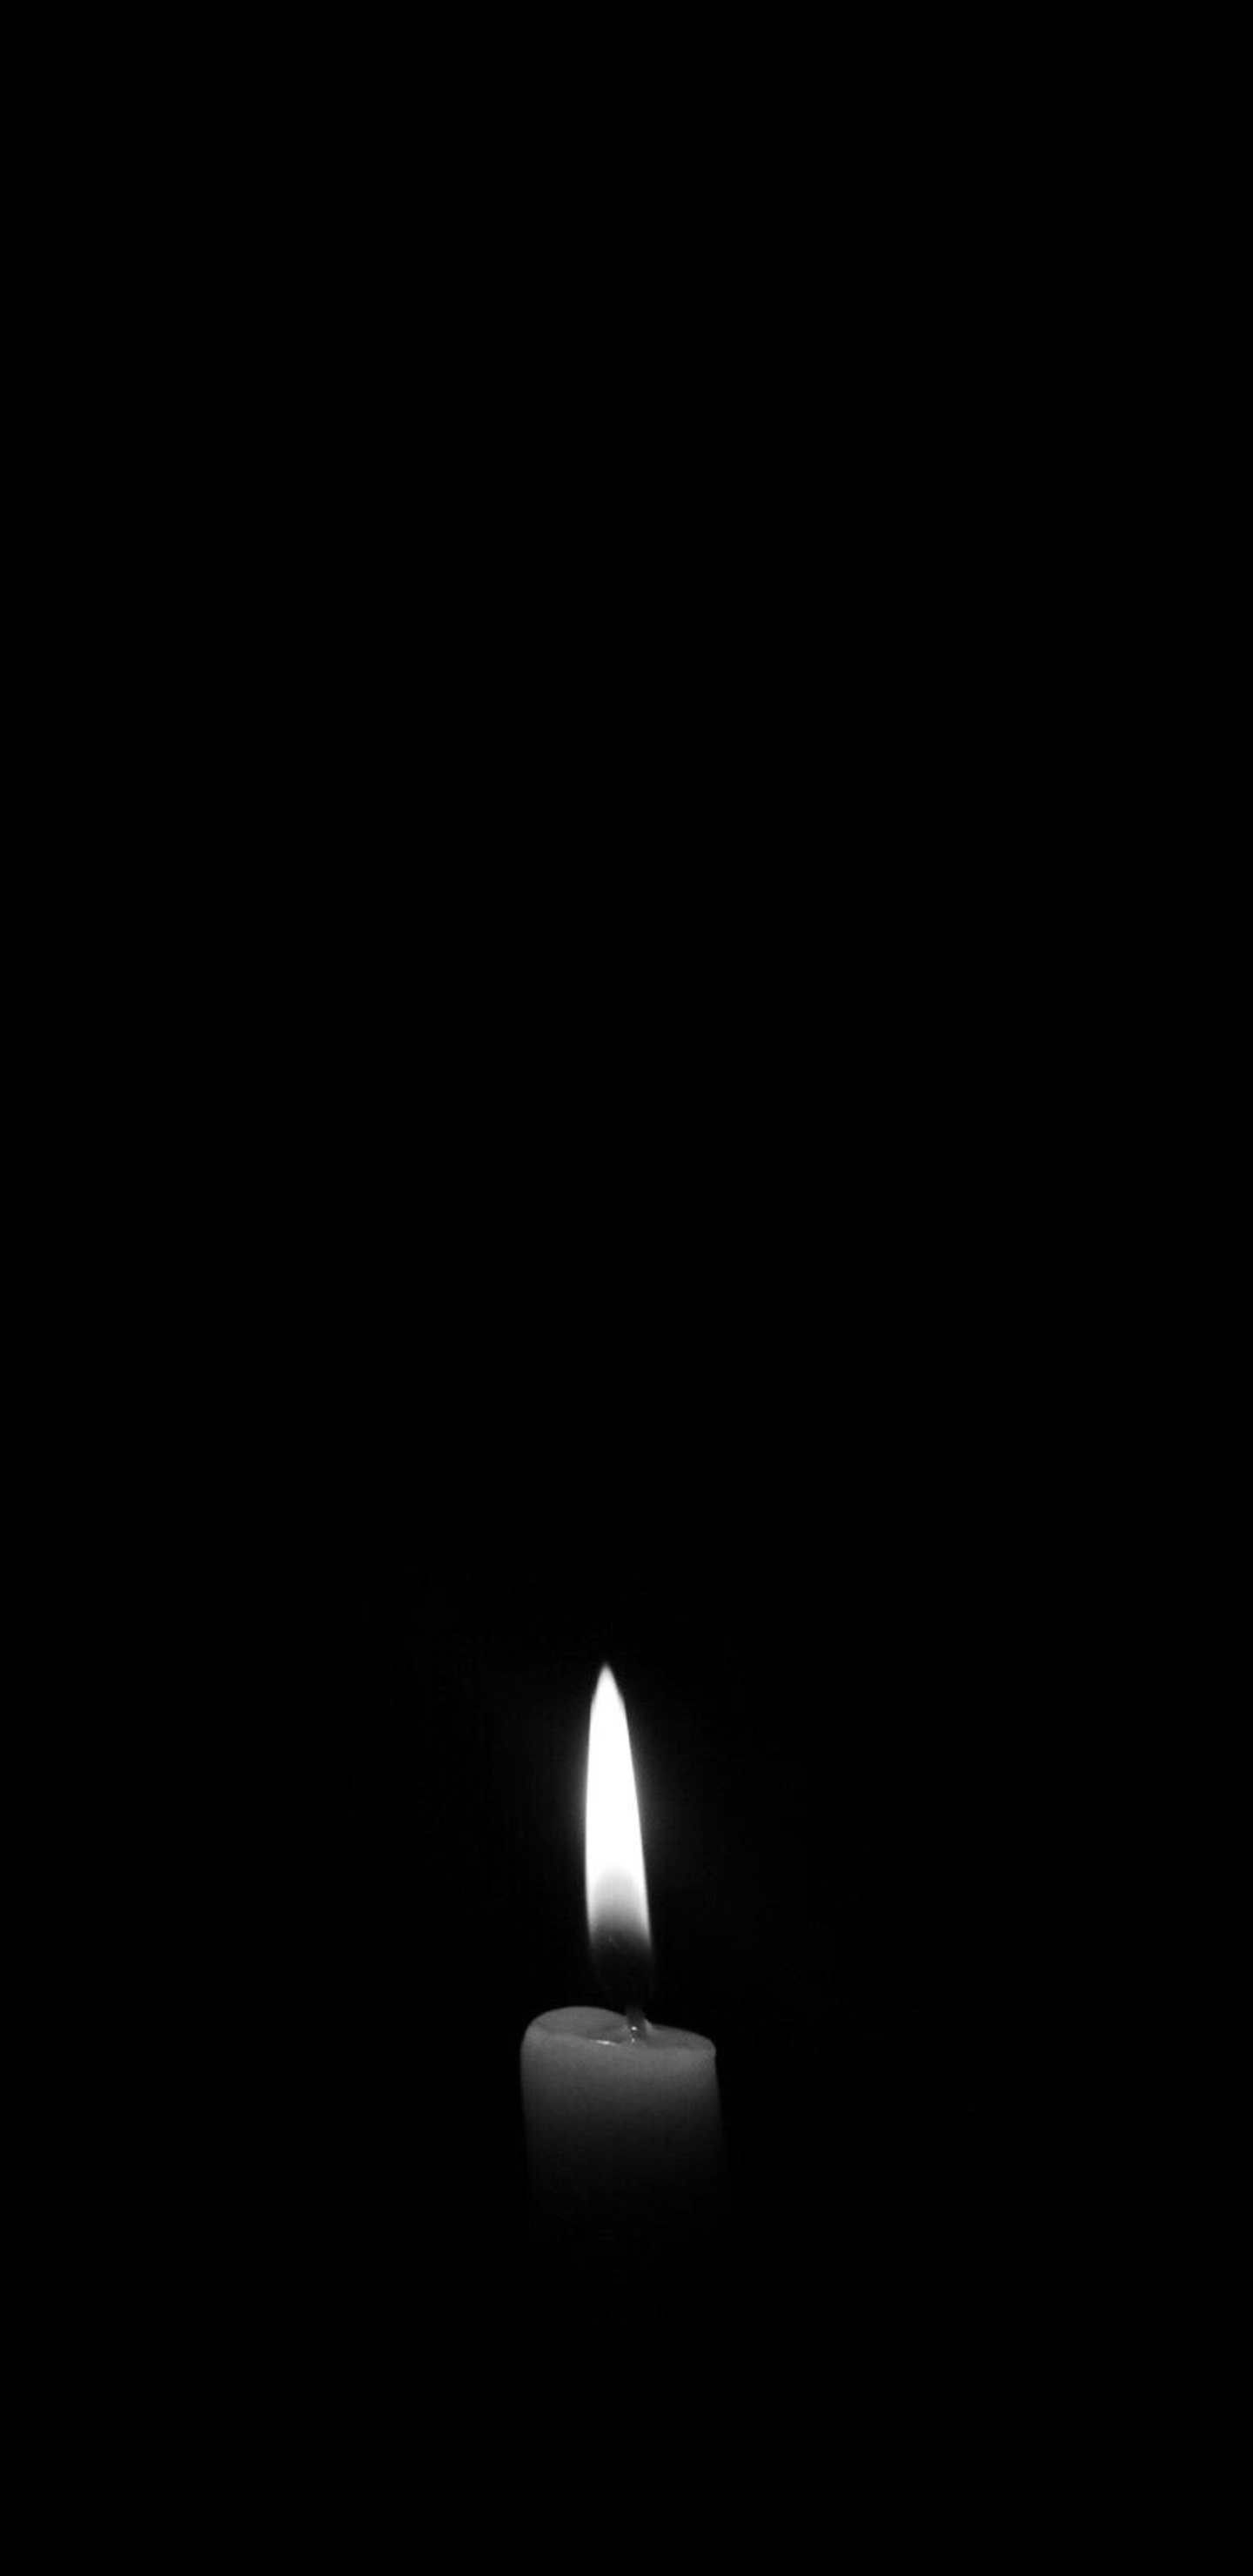 1440x2960 candle dark monochrome samsung galaxy note 9 8 - Samsung s9 wallpaper 4k ...